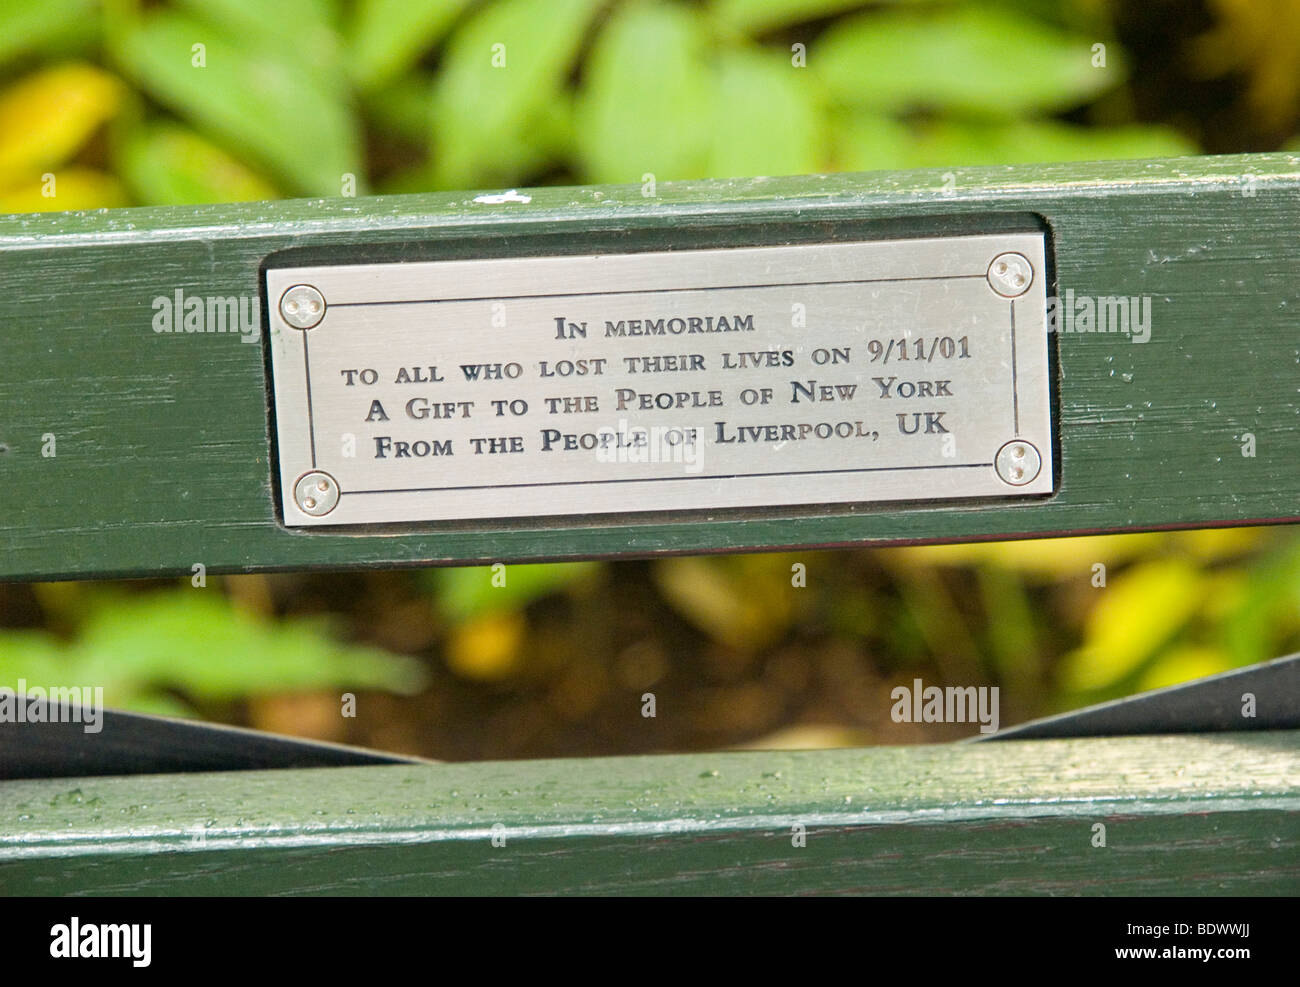 A Memorial Plaque On A Bench At Strawberry Fields In Central Park Stock Photo Royalty Free